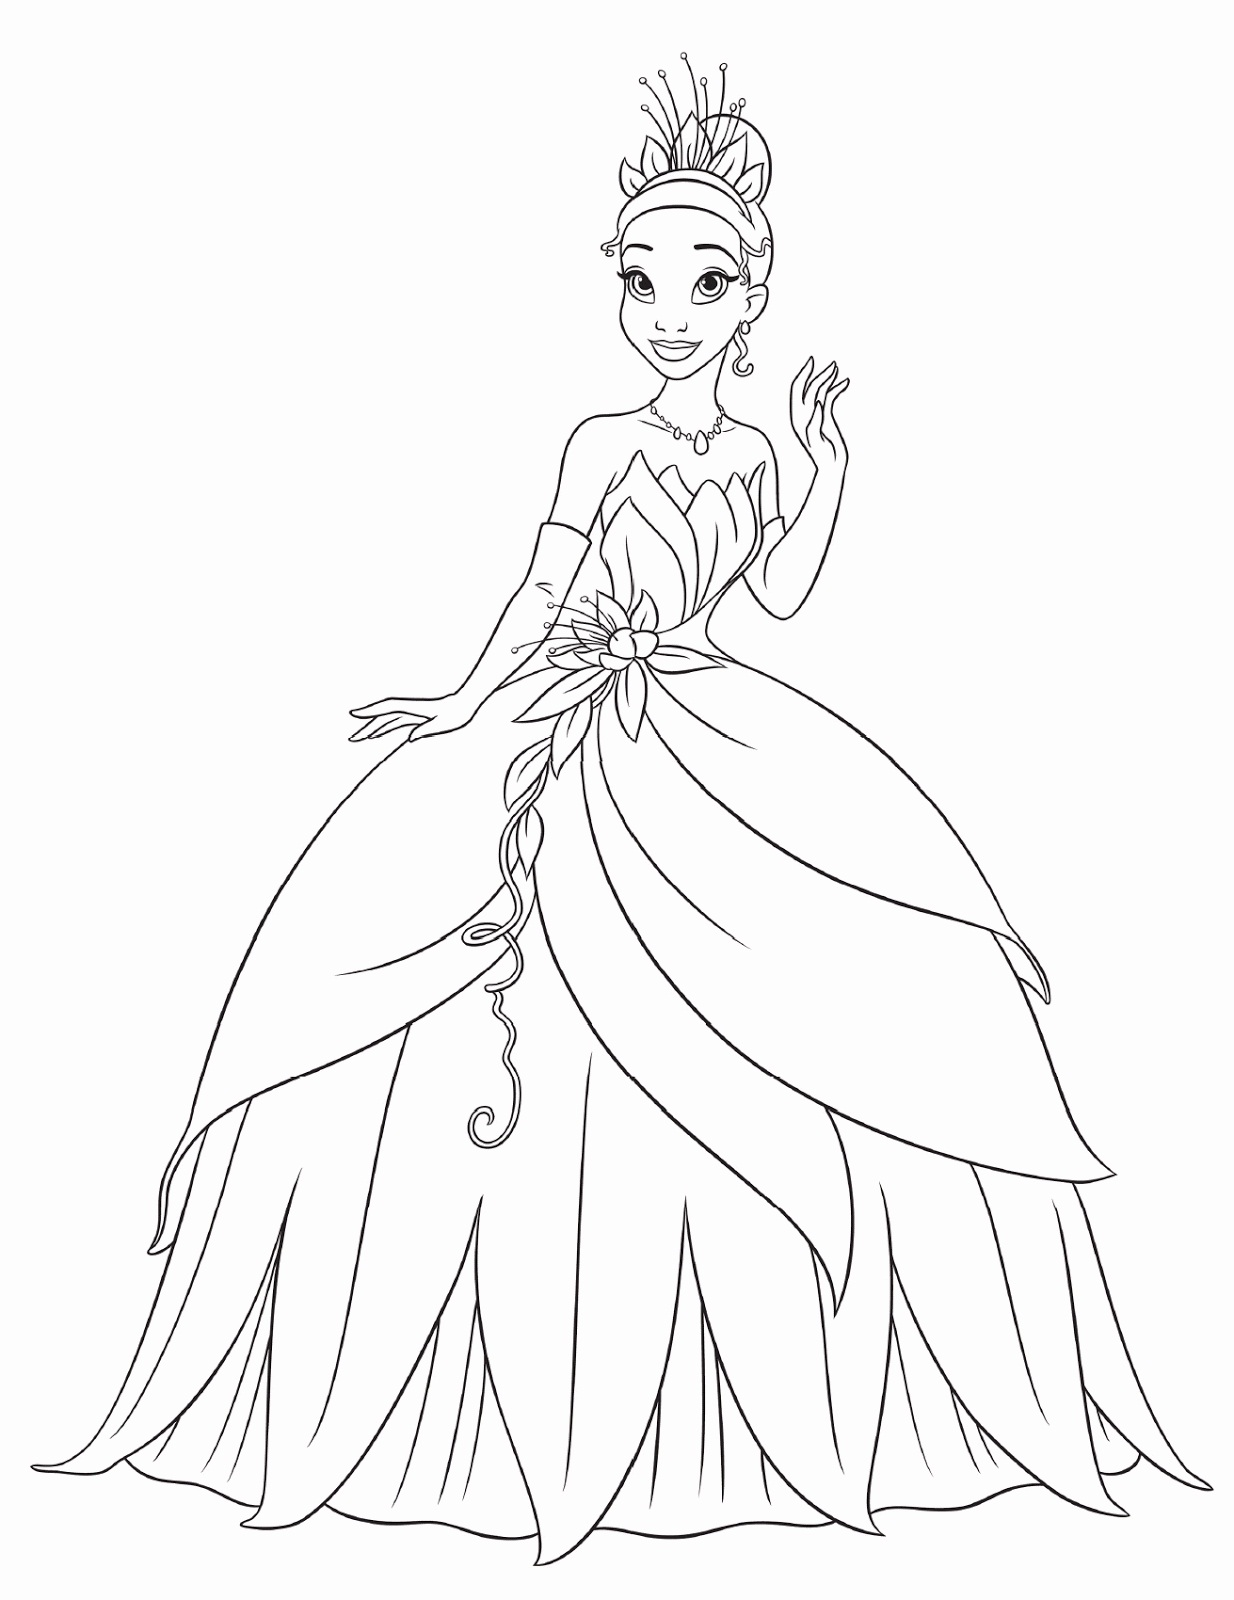 Free Coloring Pages Of Princess Gowns Printable Coloring Pages Princess